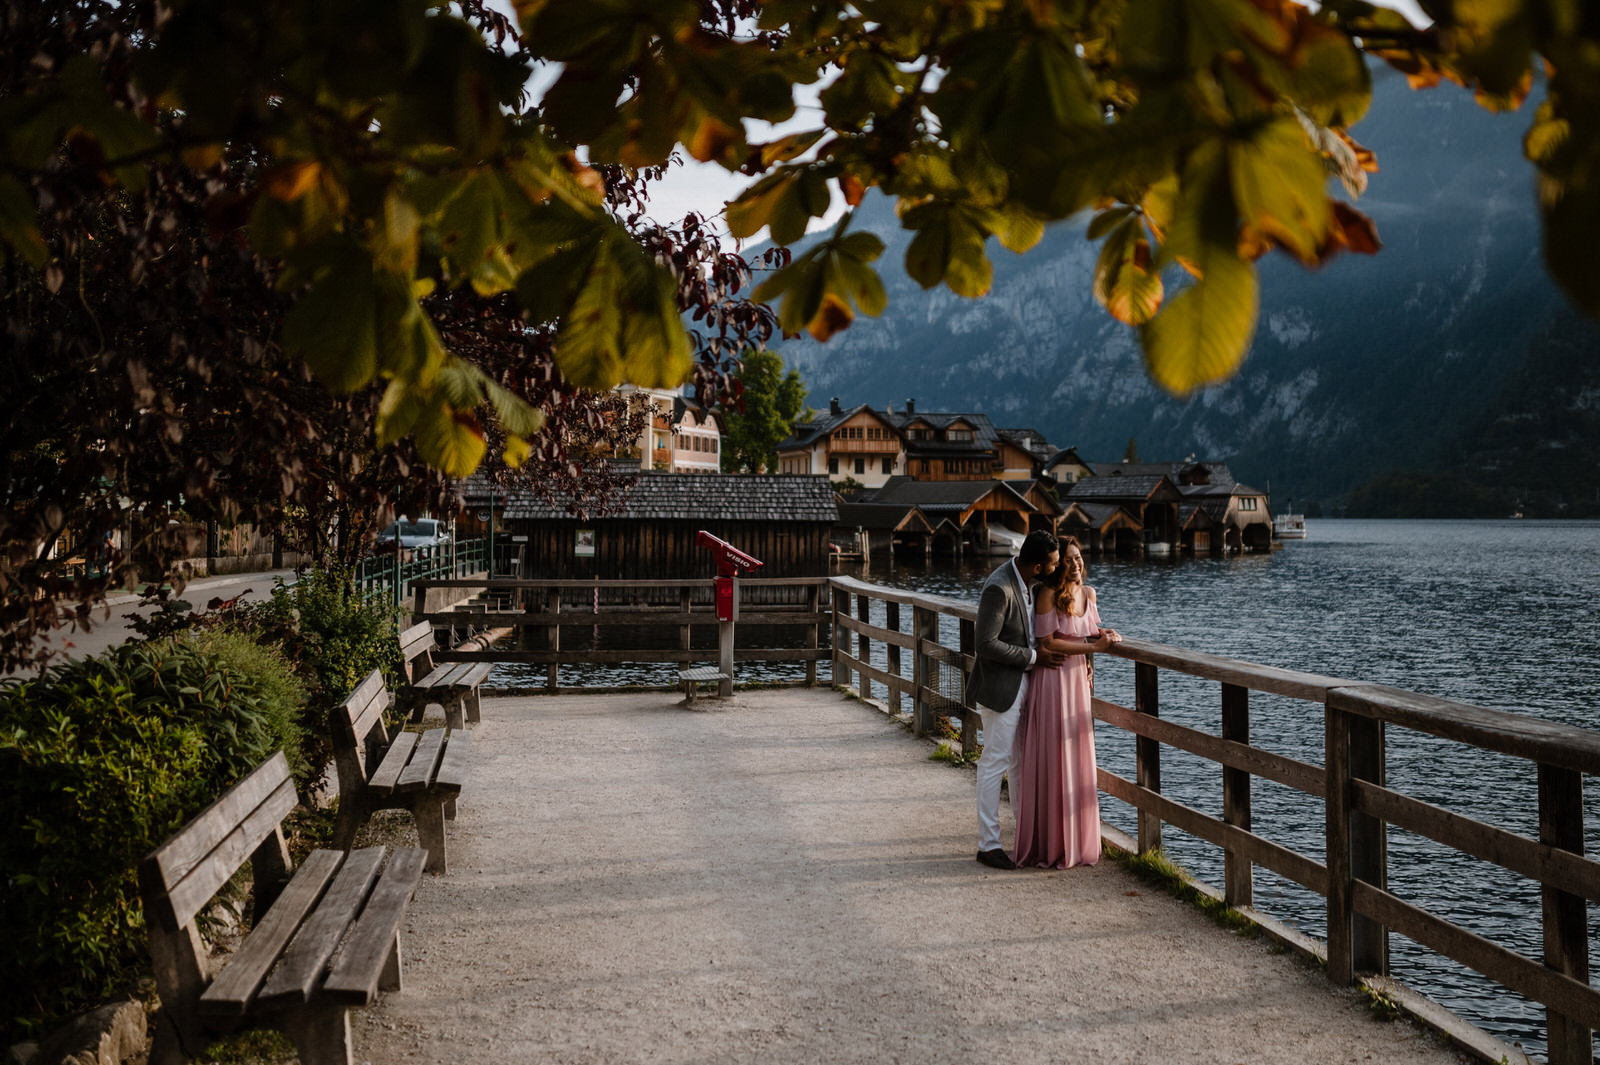 cuople standing at the dock edge and looking the lake of Hallstatt